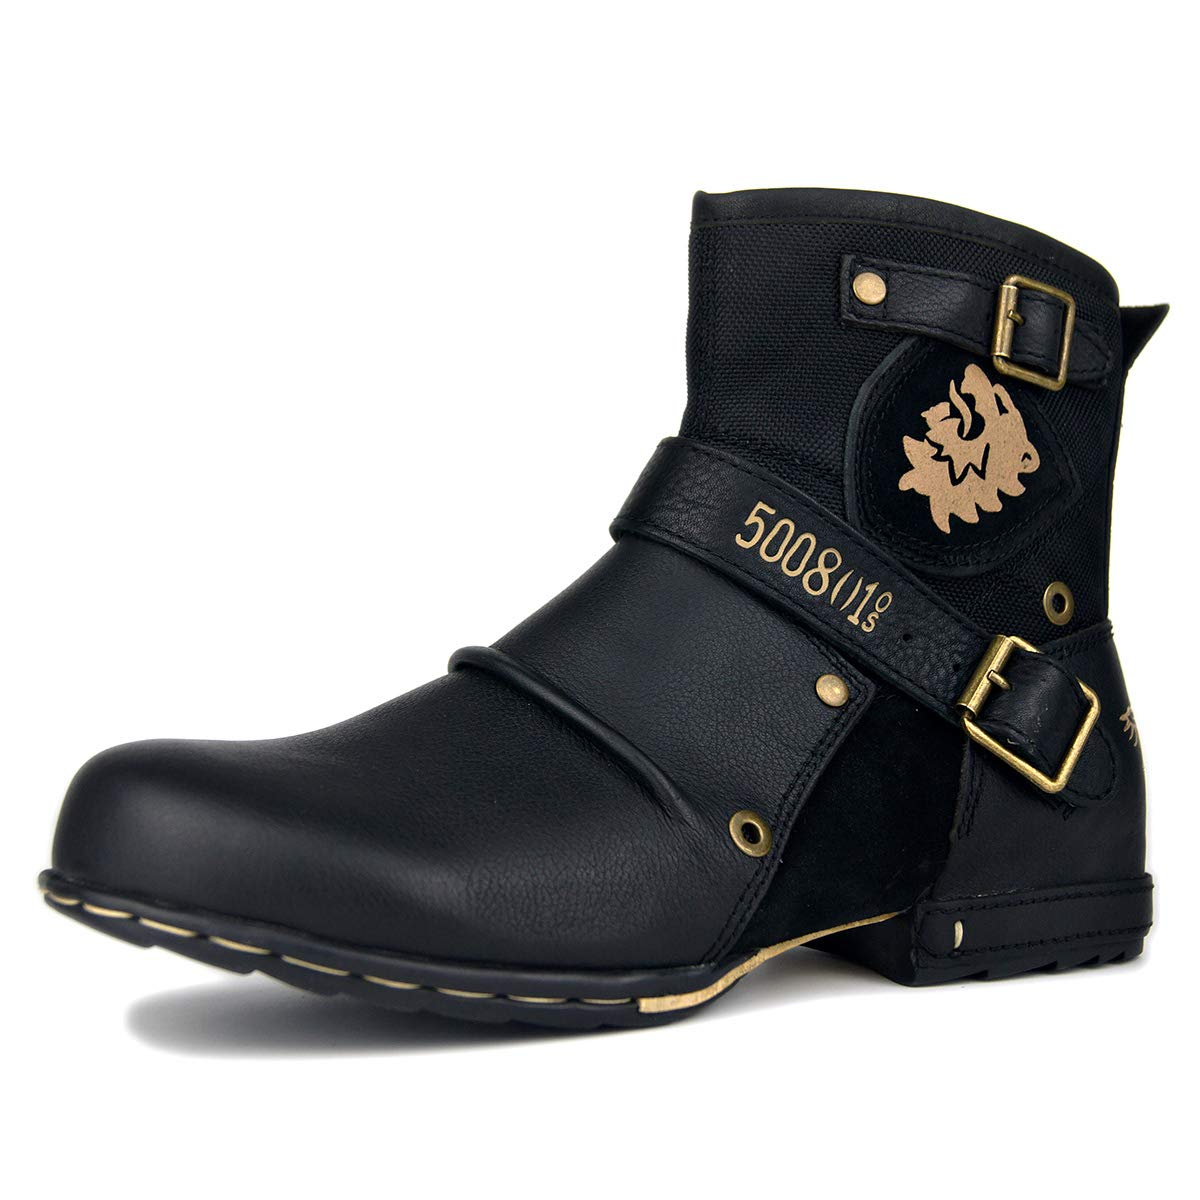 OTTO ZONE Biker Boots Motorcycle